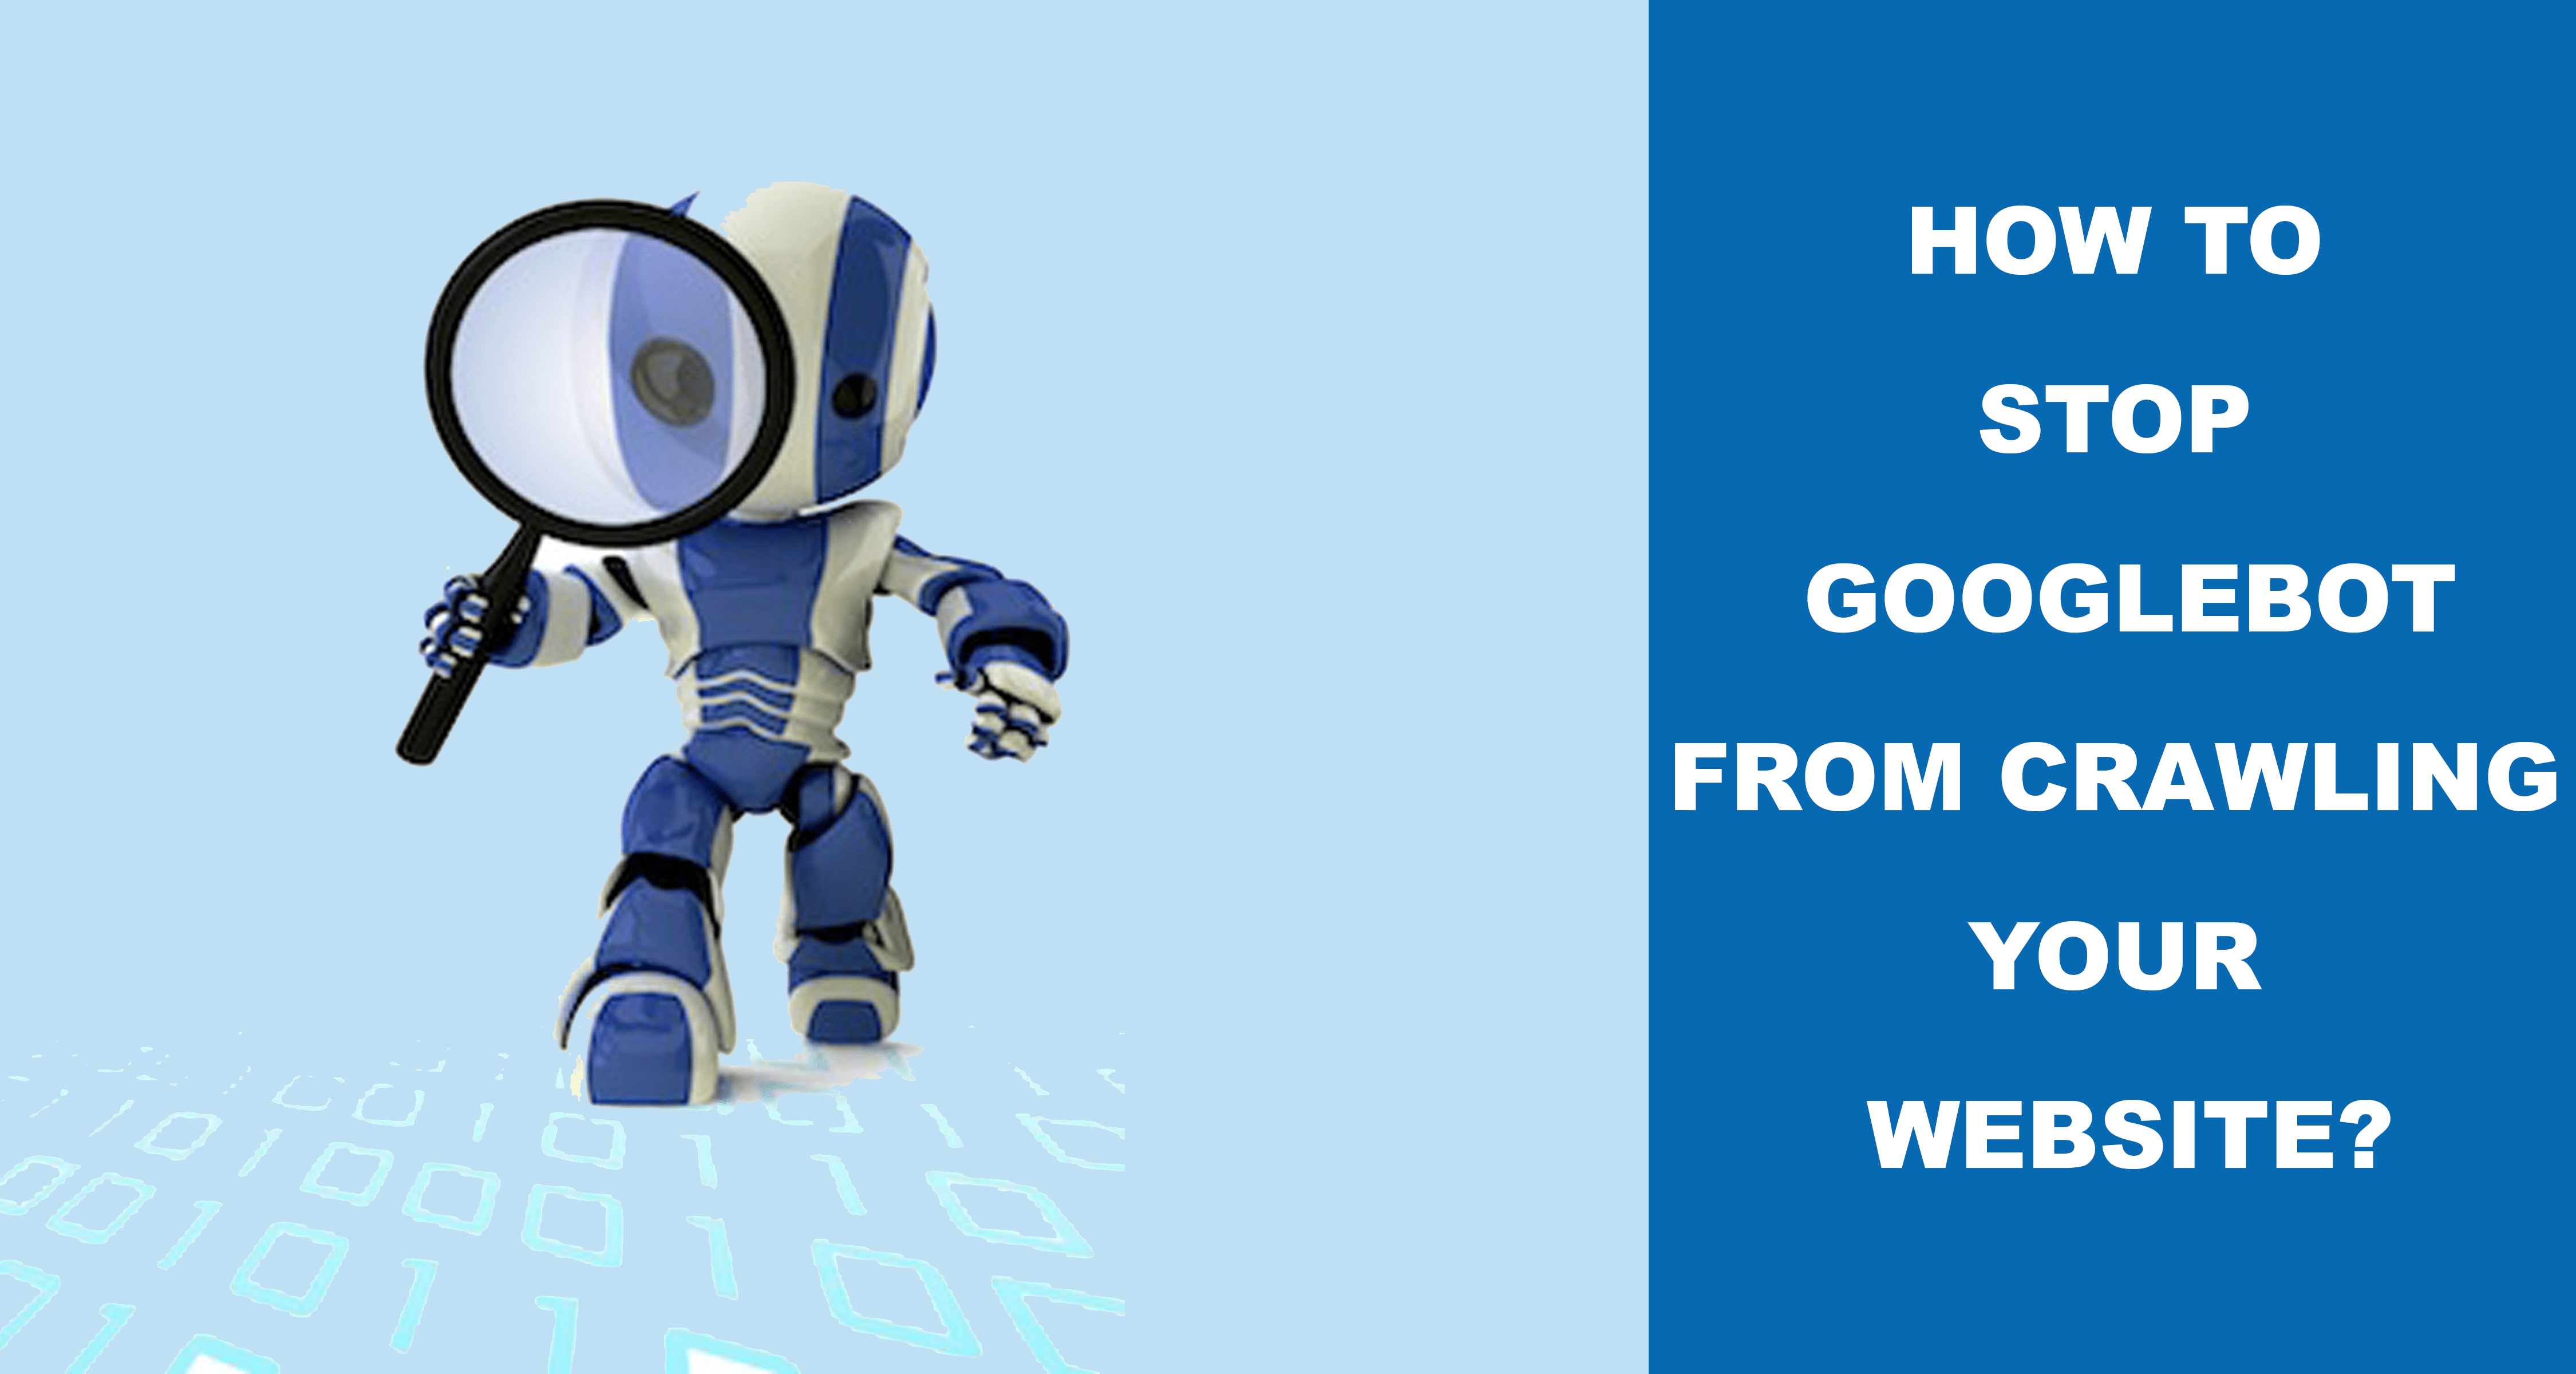 How To Stop Googlebot From Crawling Your Website